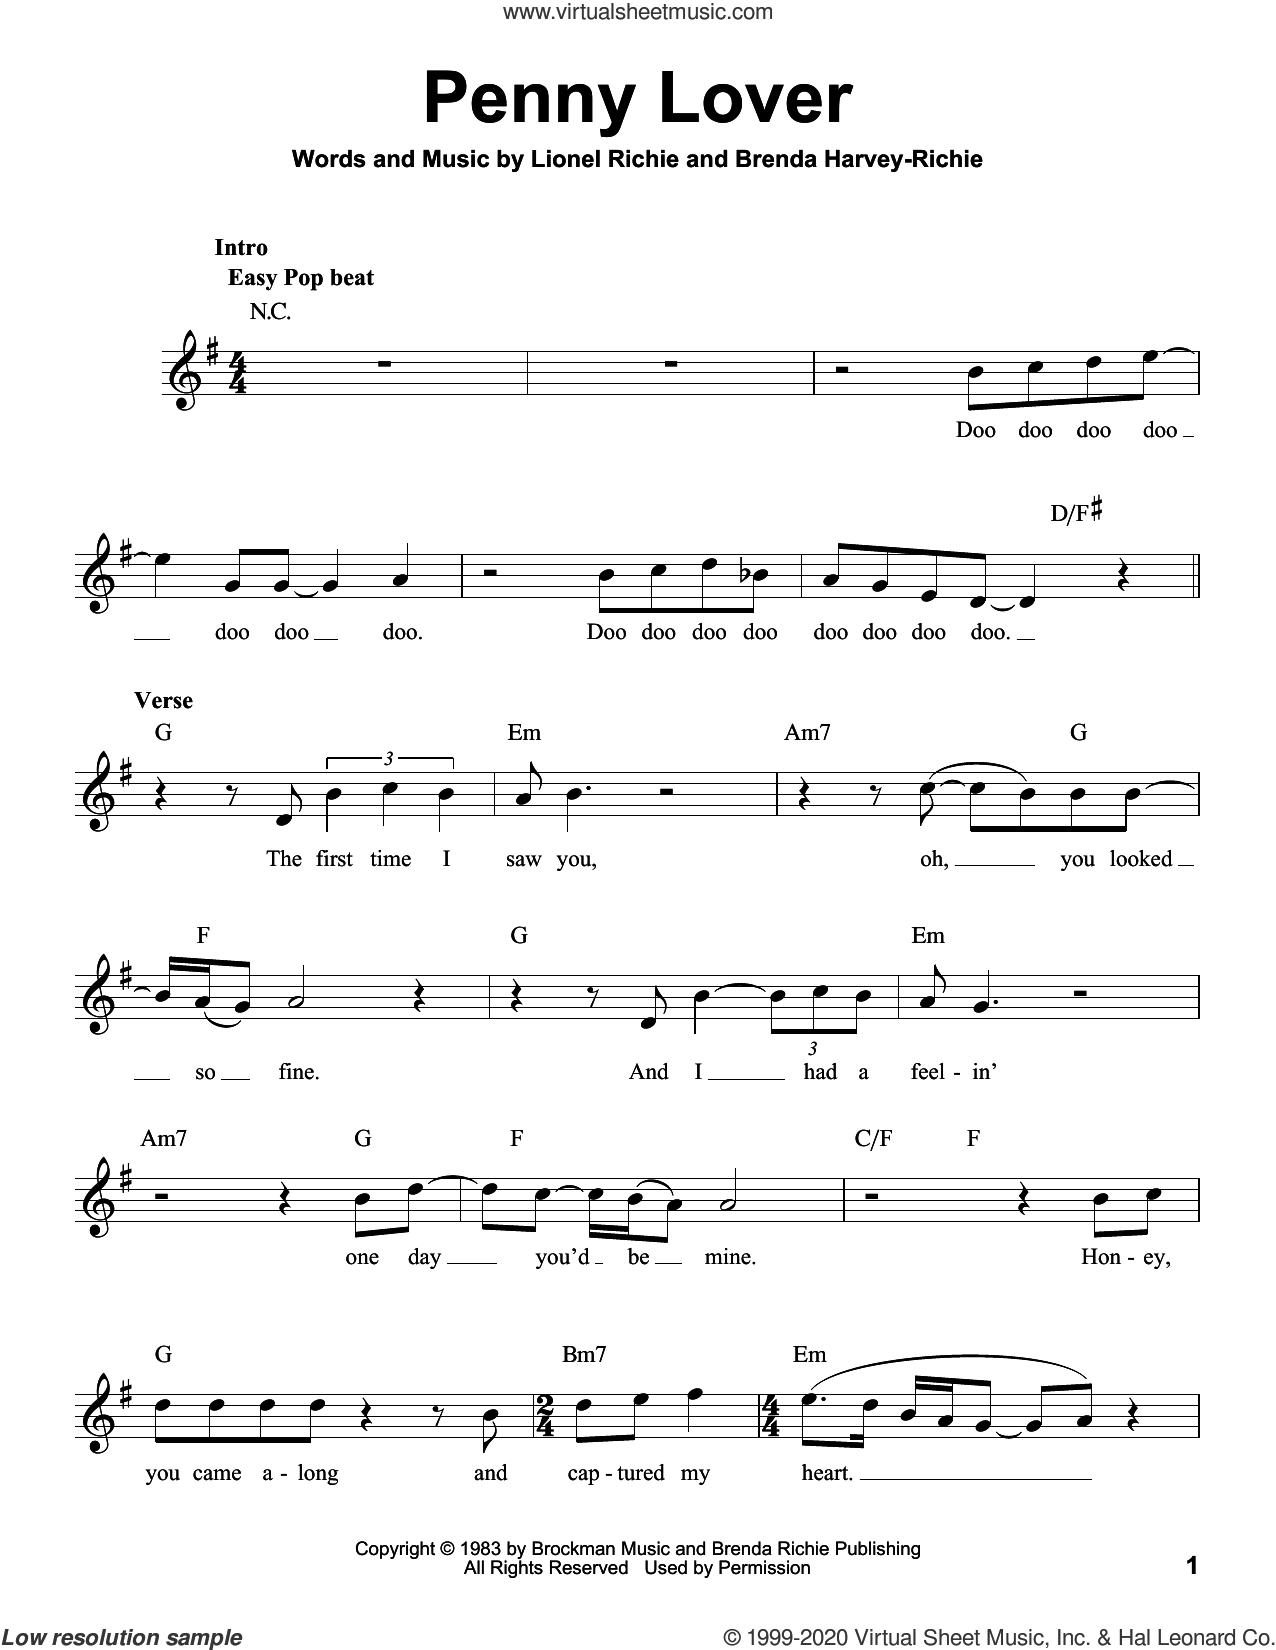 Penny Lover sheet music for voice solo by Lionel Richie and Brenda Harvey-Richie, intermediate skill level